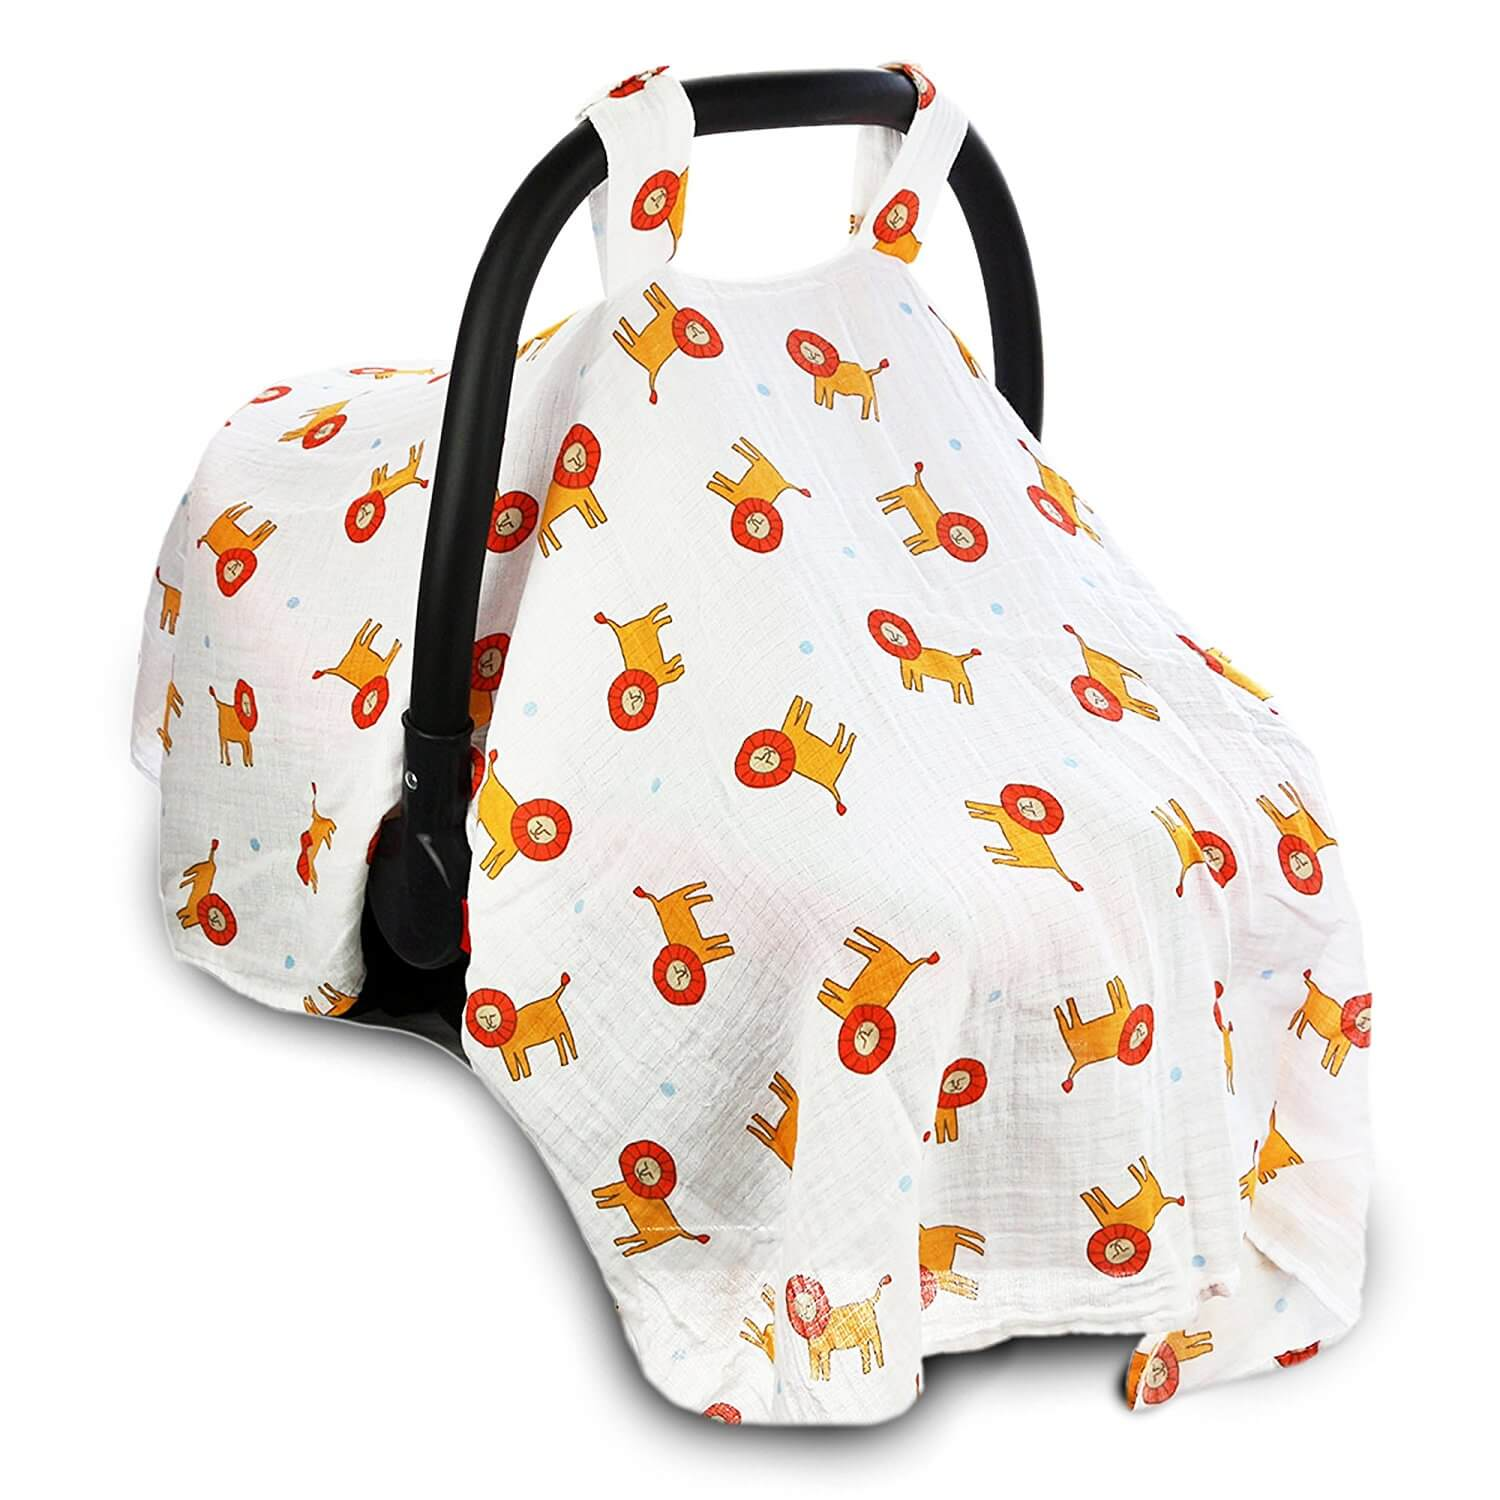 The Best Infant Car Seat Covers For Your Baby Babycaremag